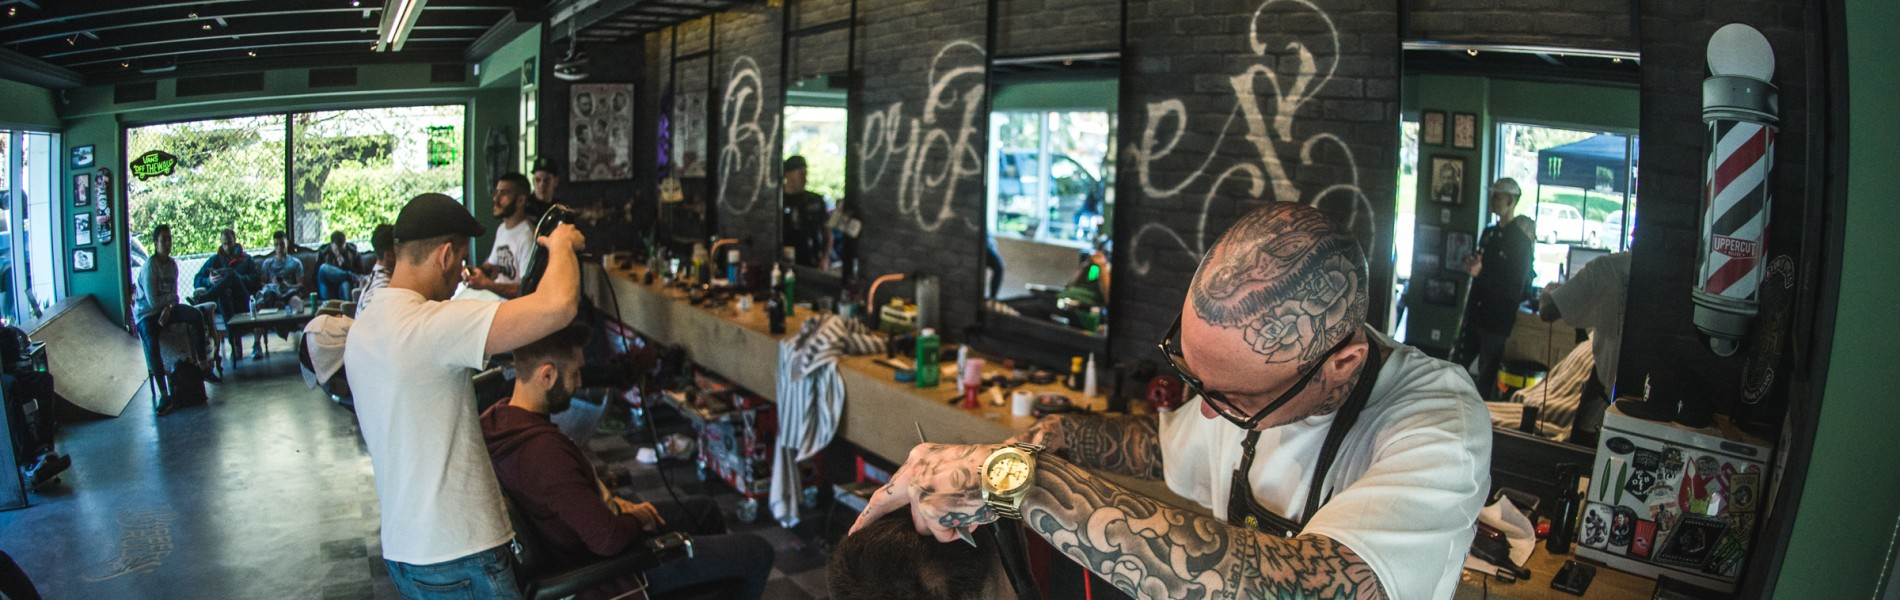 Photos from our scene partner Barber Rules 3 Years Anniversary Party, feat. Paul Hewitt from AONO